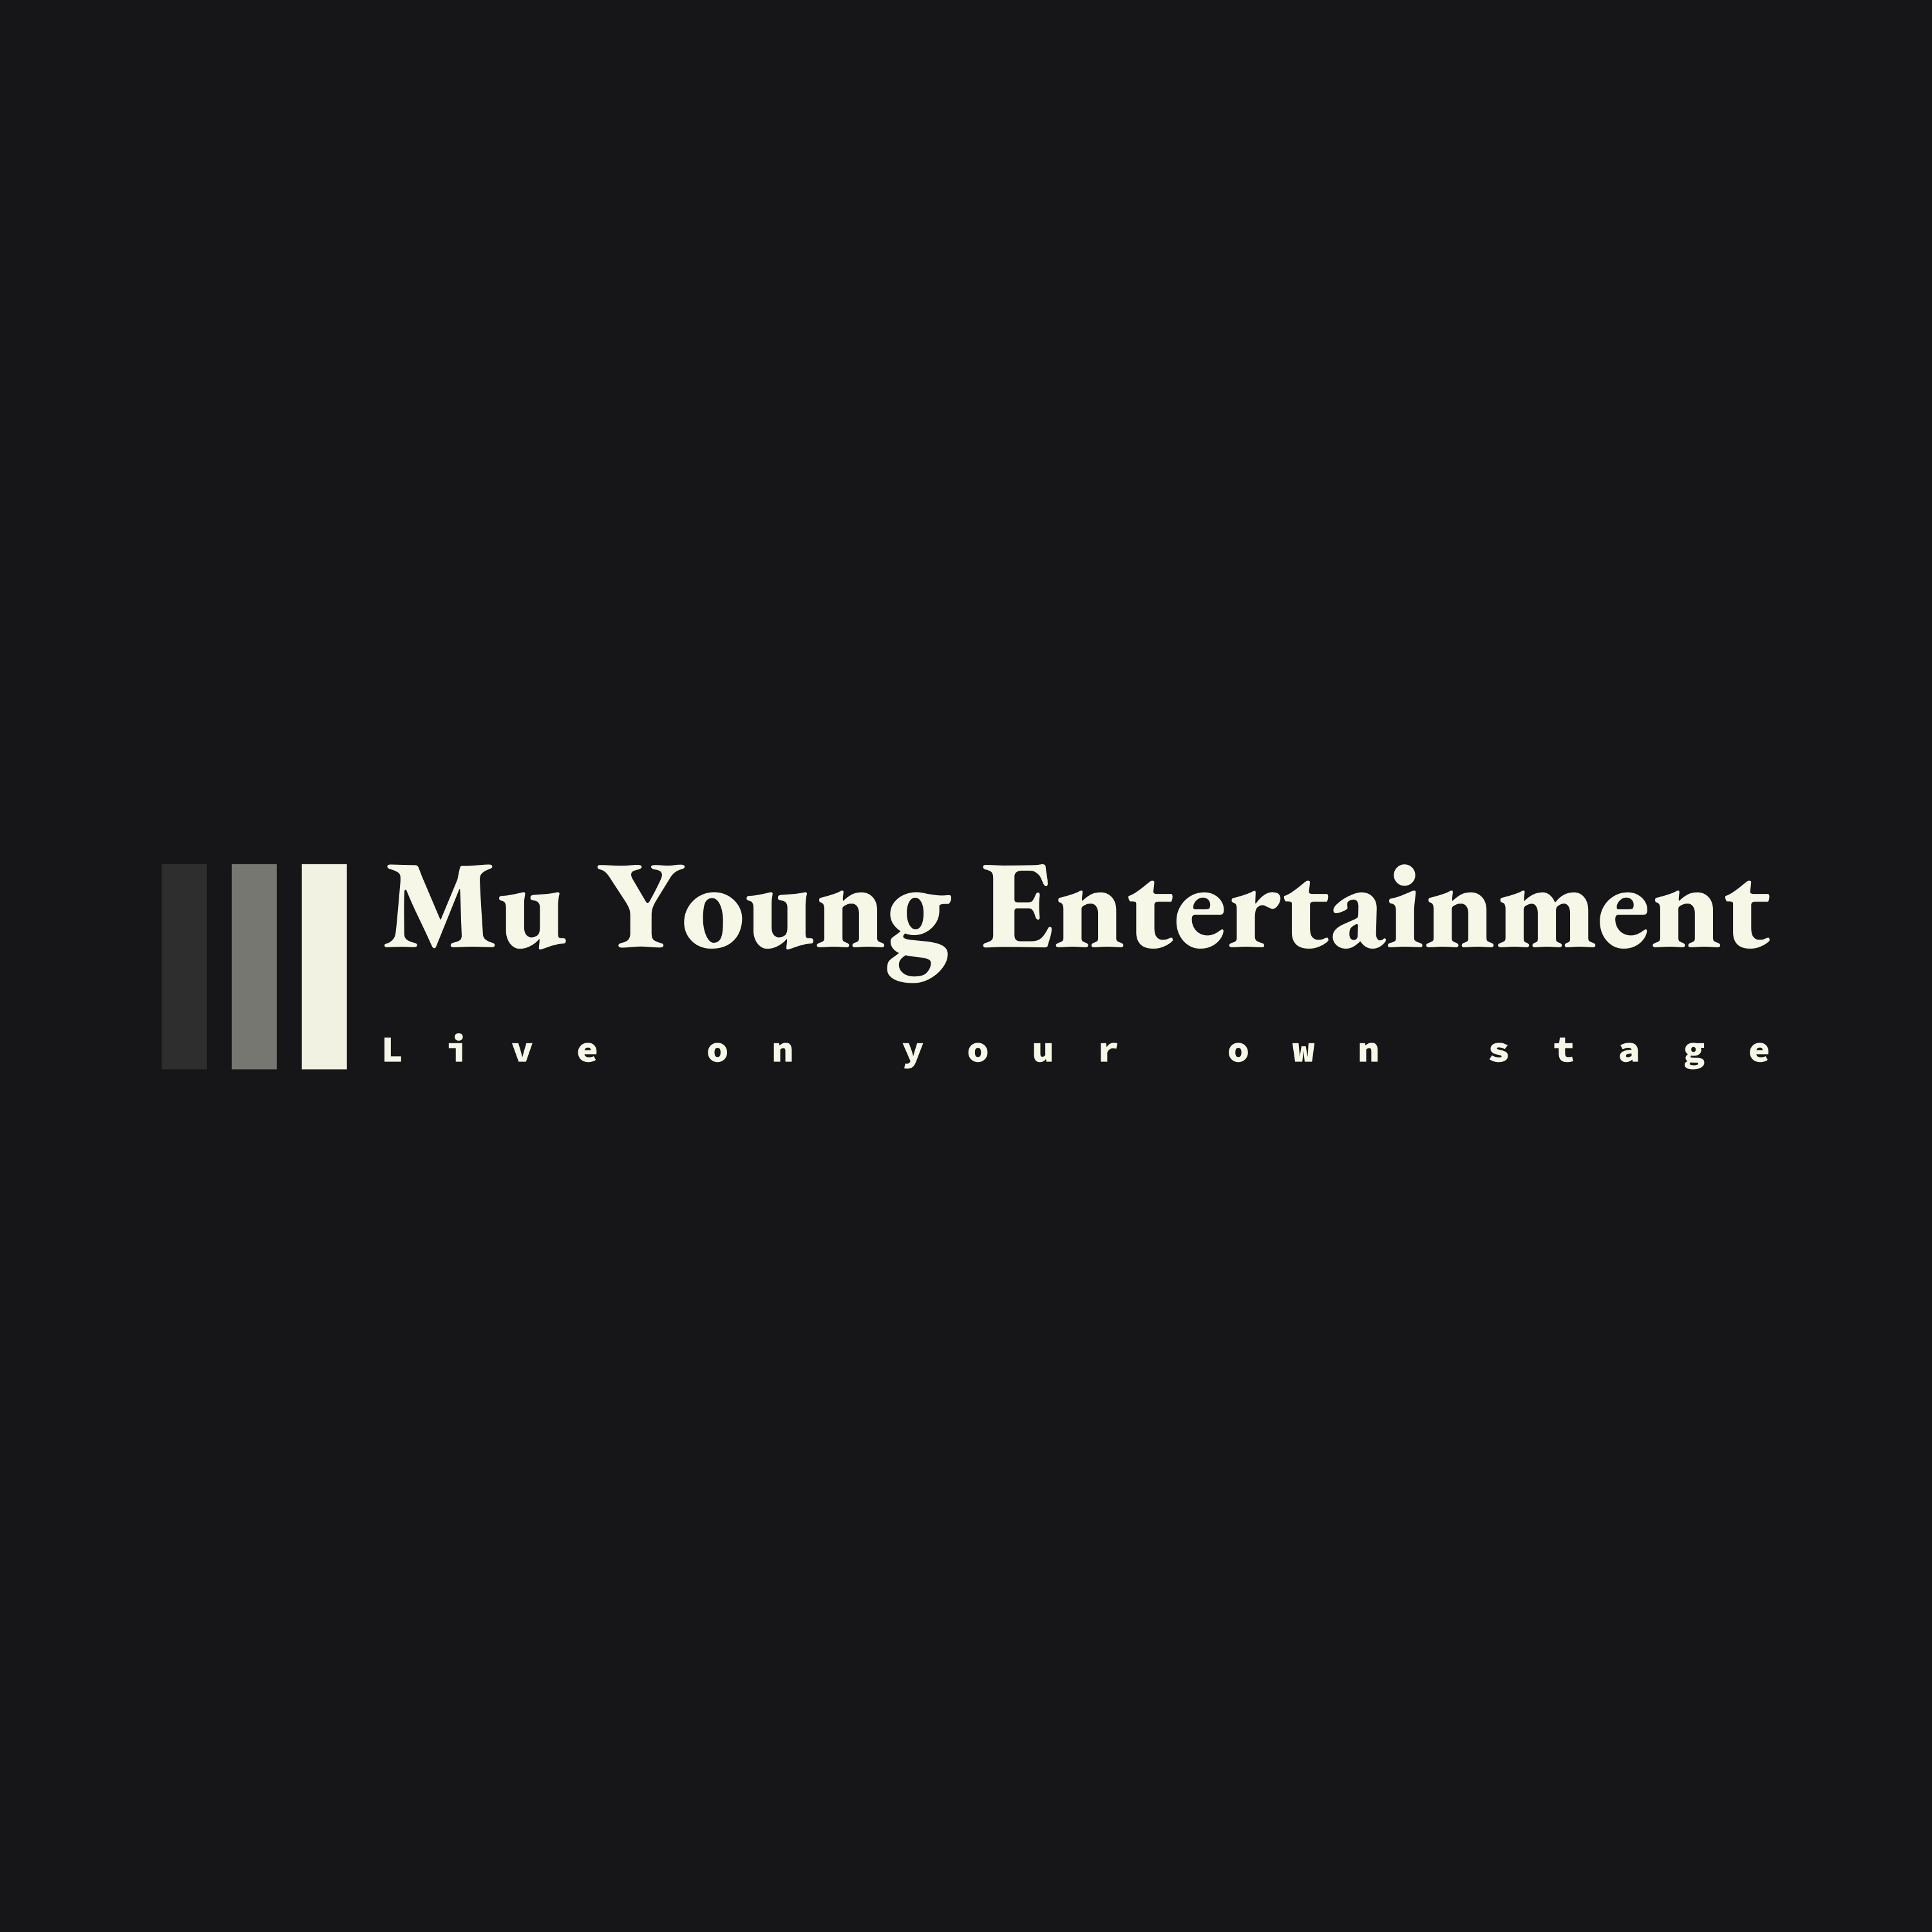 Mu Young Entertainment